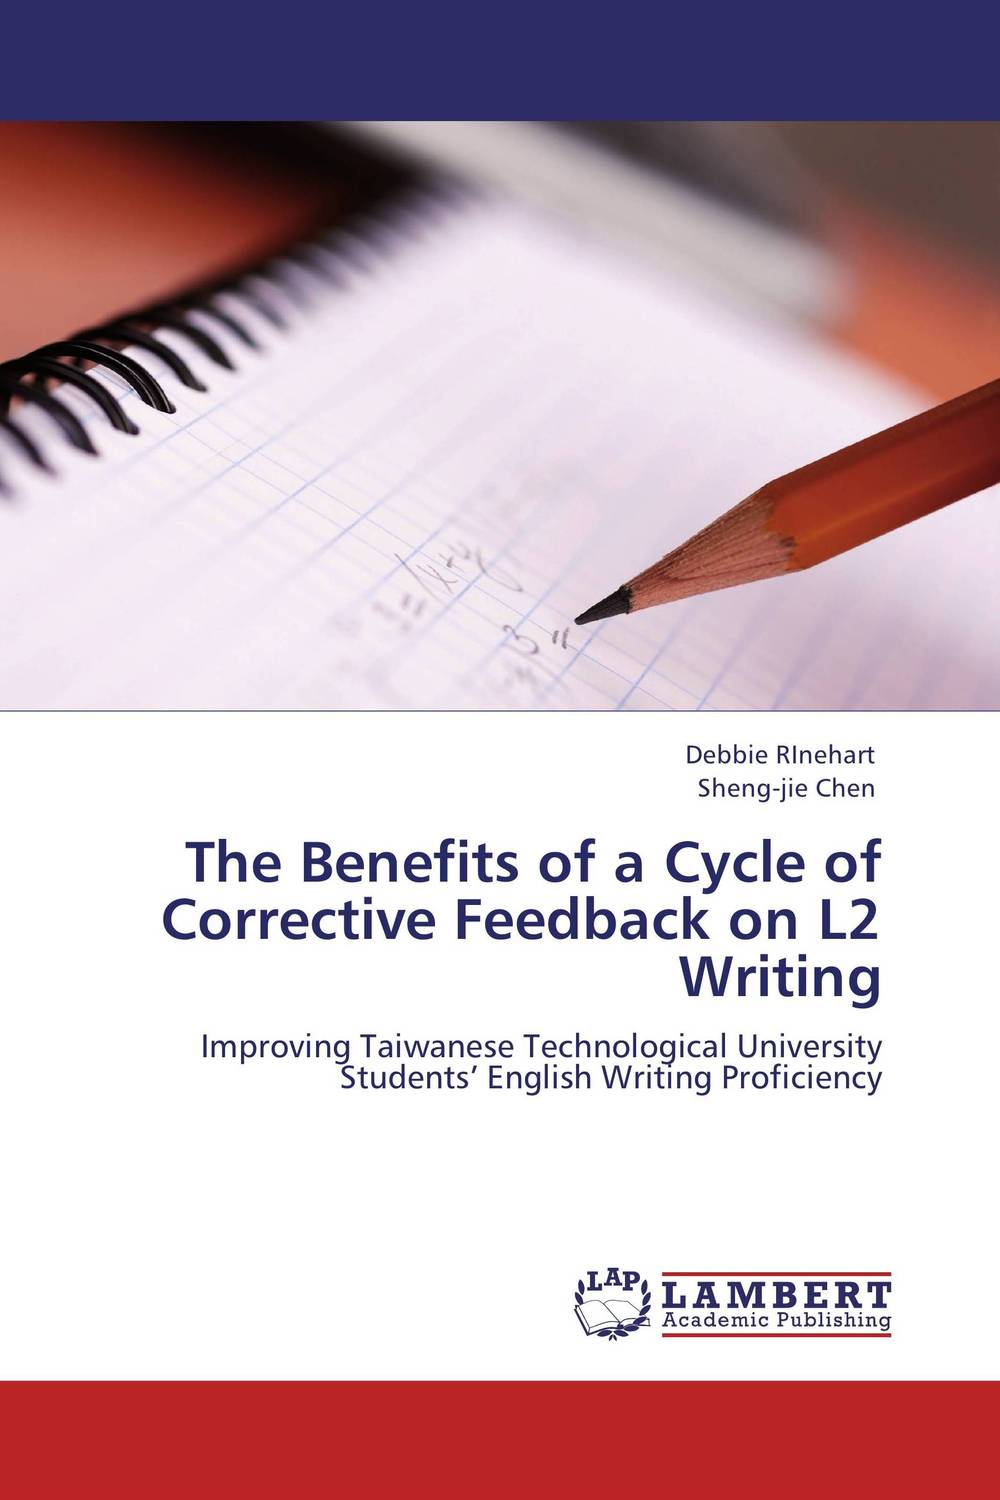 The Benefits of a Cycle of Corrective Feedback on L2 Writing paula boehme the perceptions of work life balance benefits